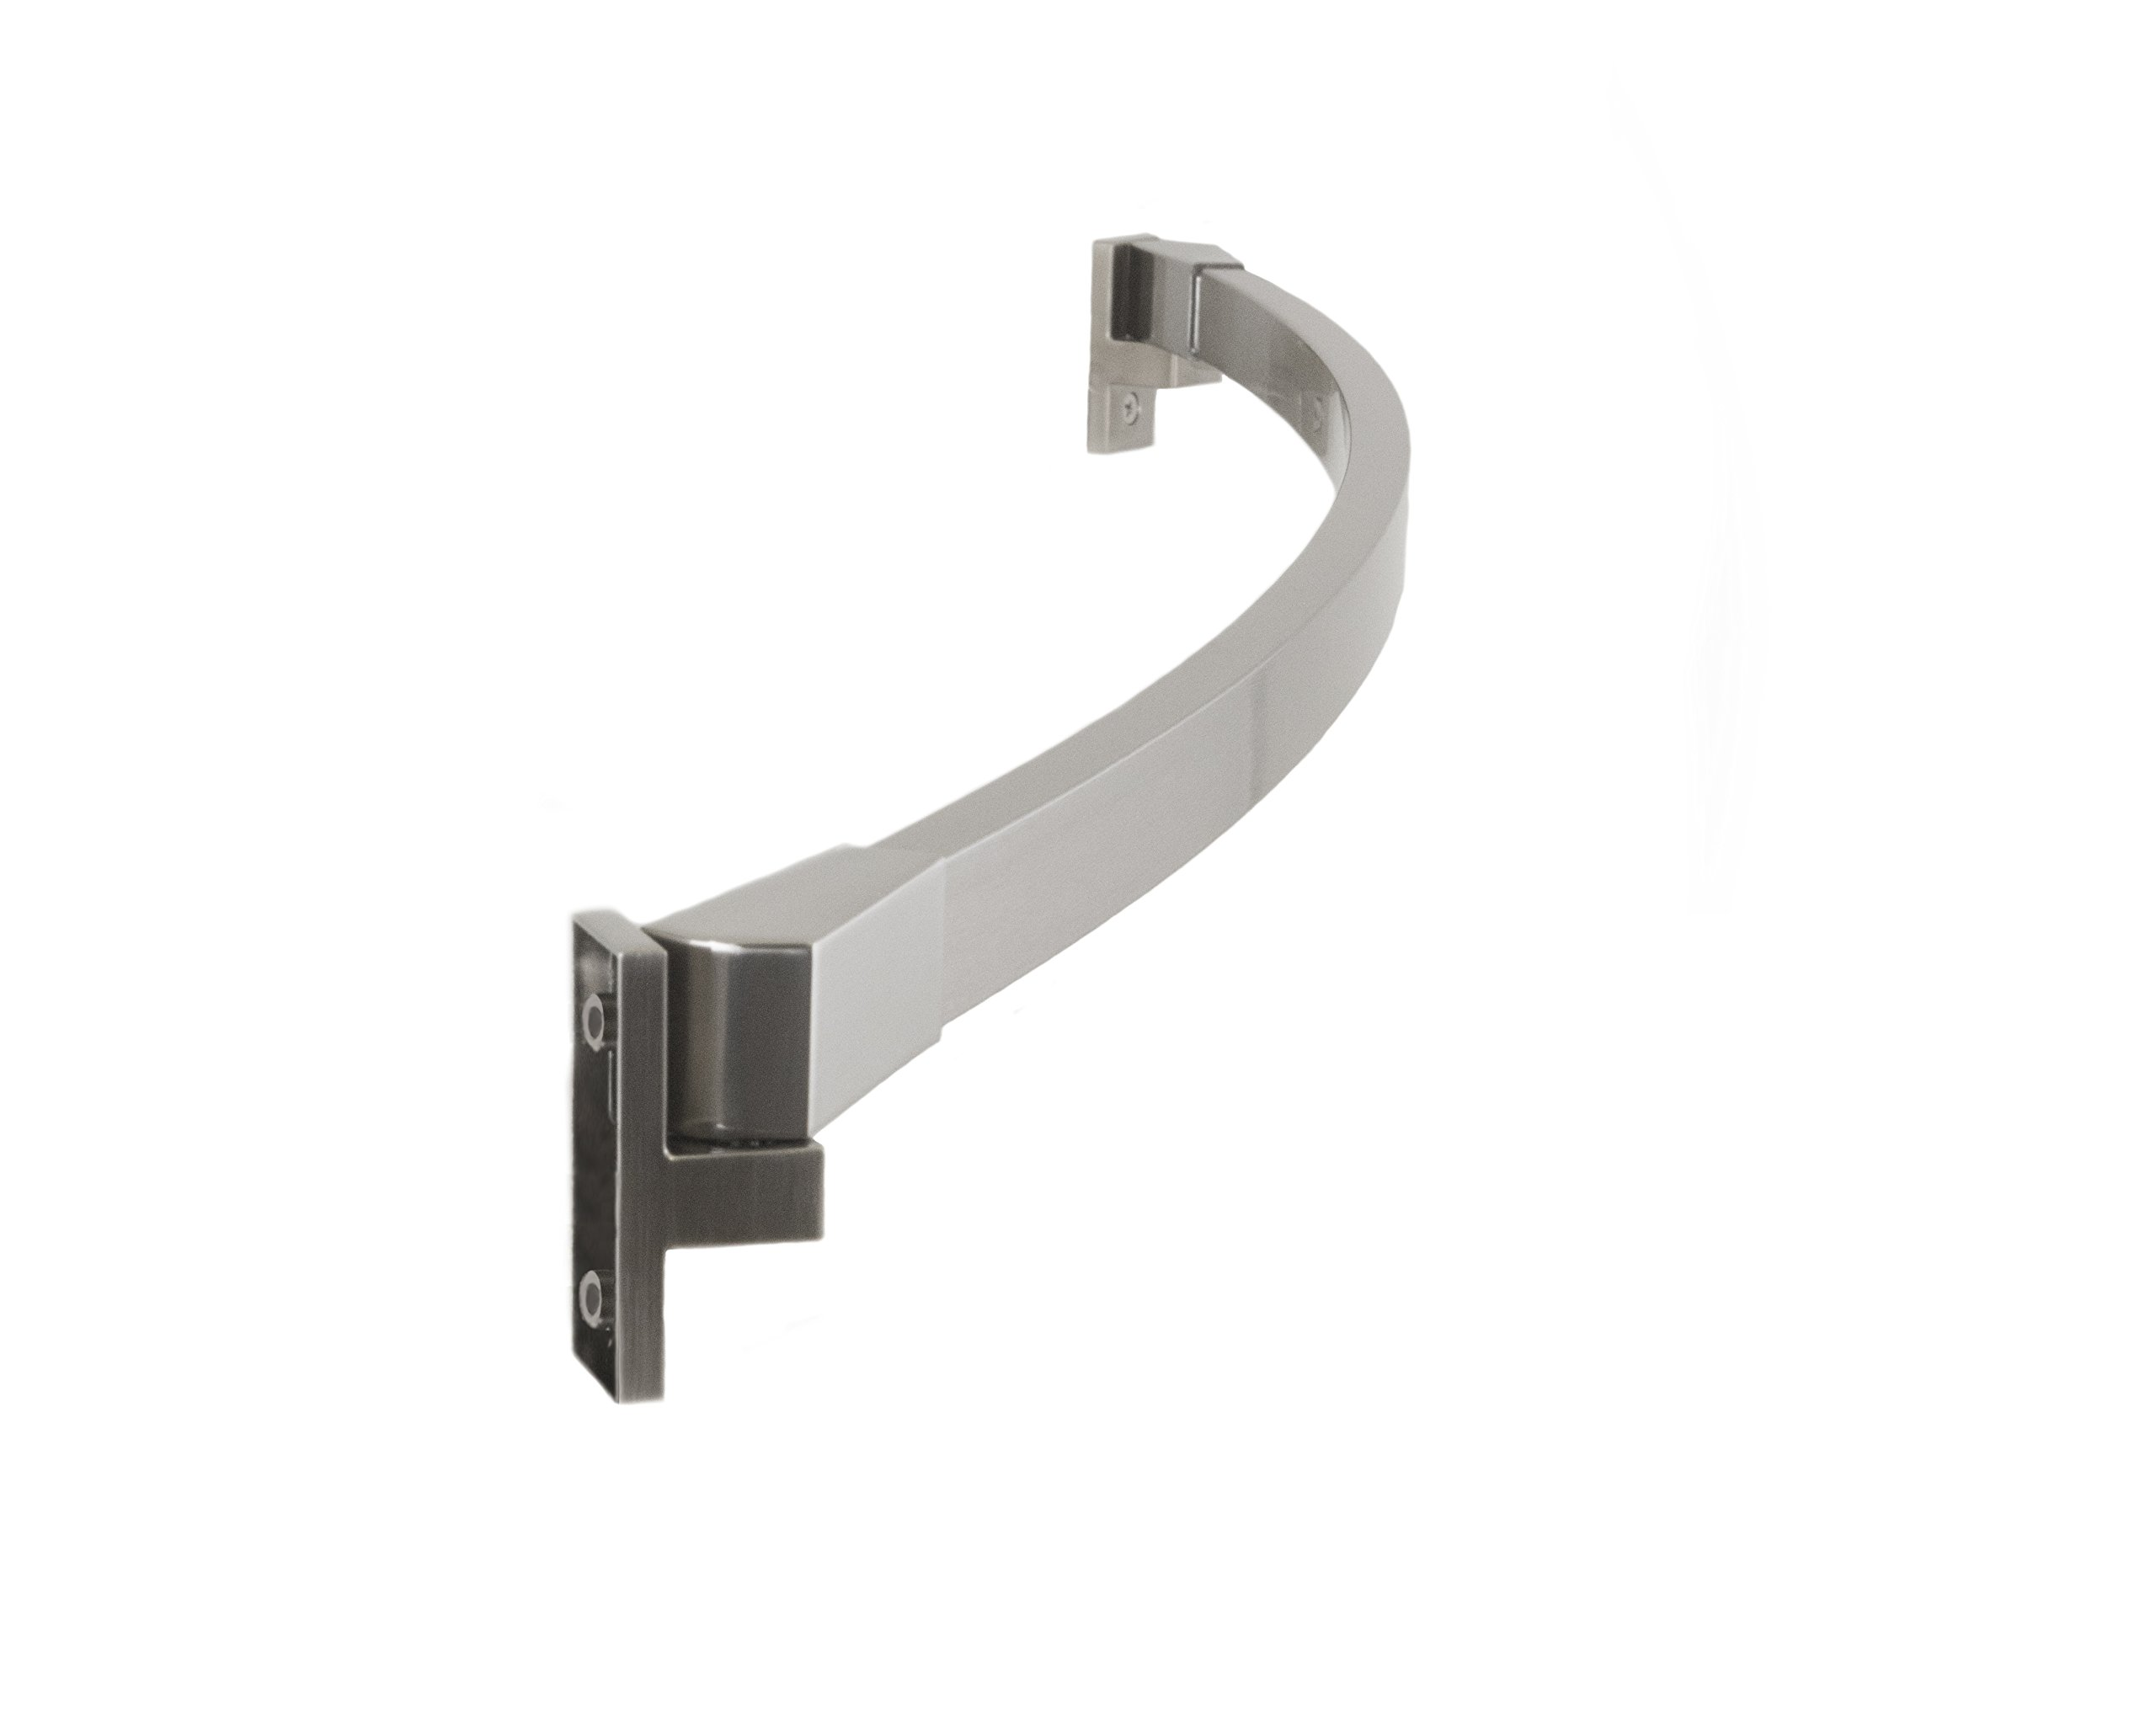 """Preferred Bath Accessories 112-5BN-A Curved Shower Rod Adjustable 42"""" To 62"""", Brushed Nickel"""